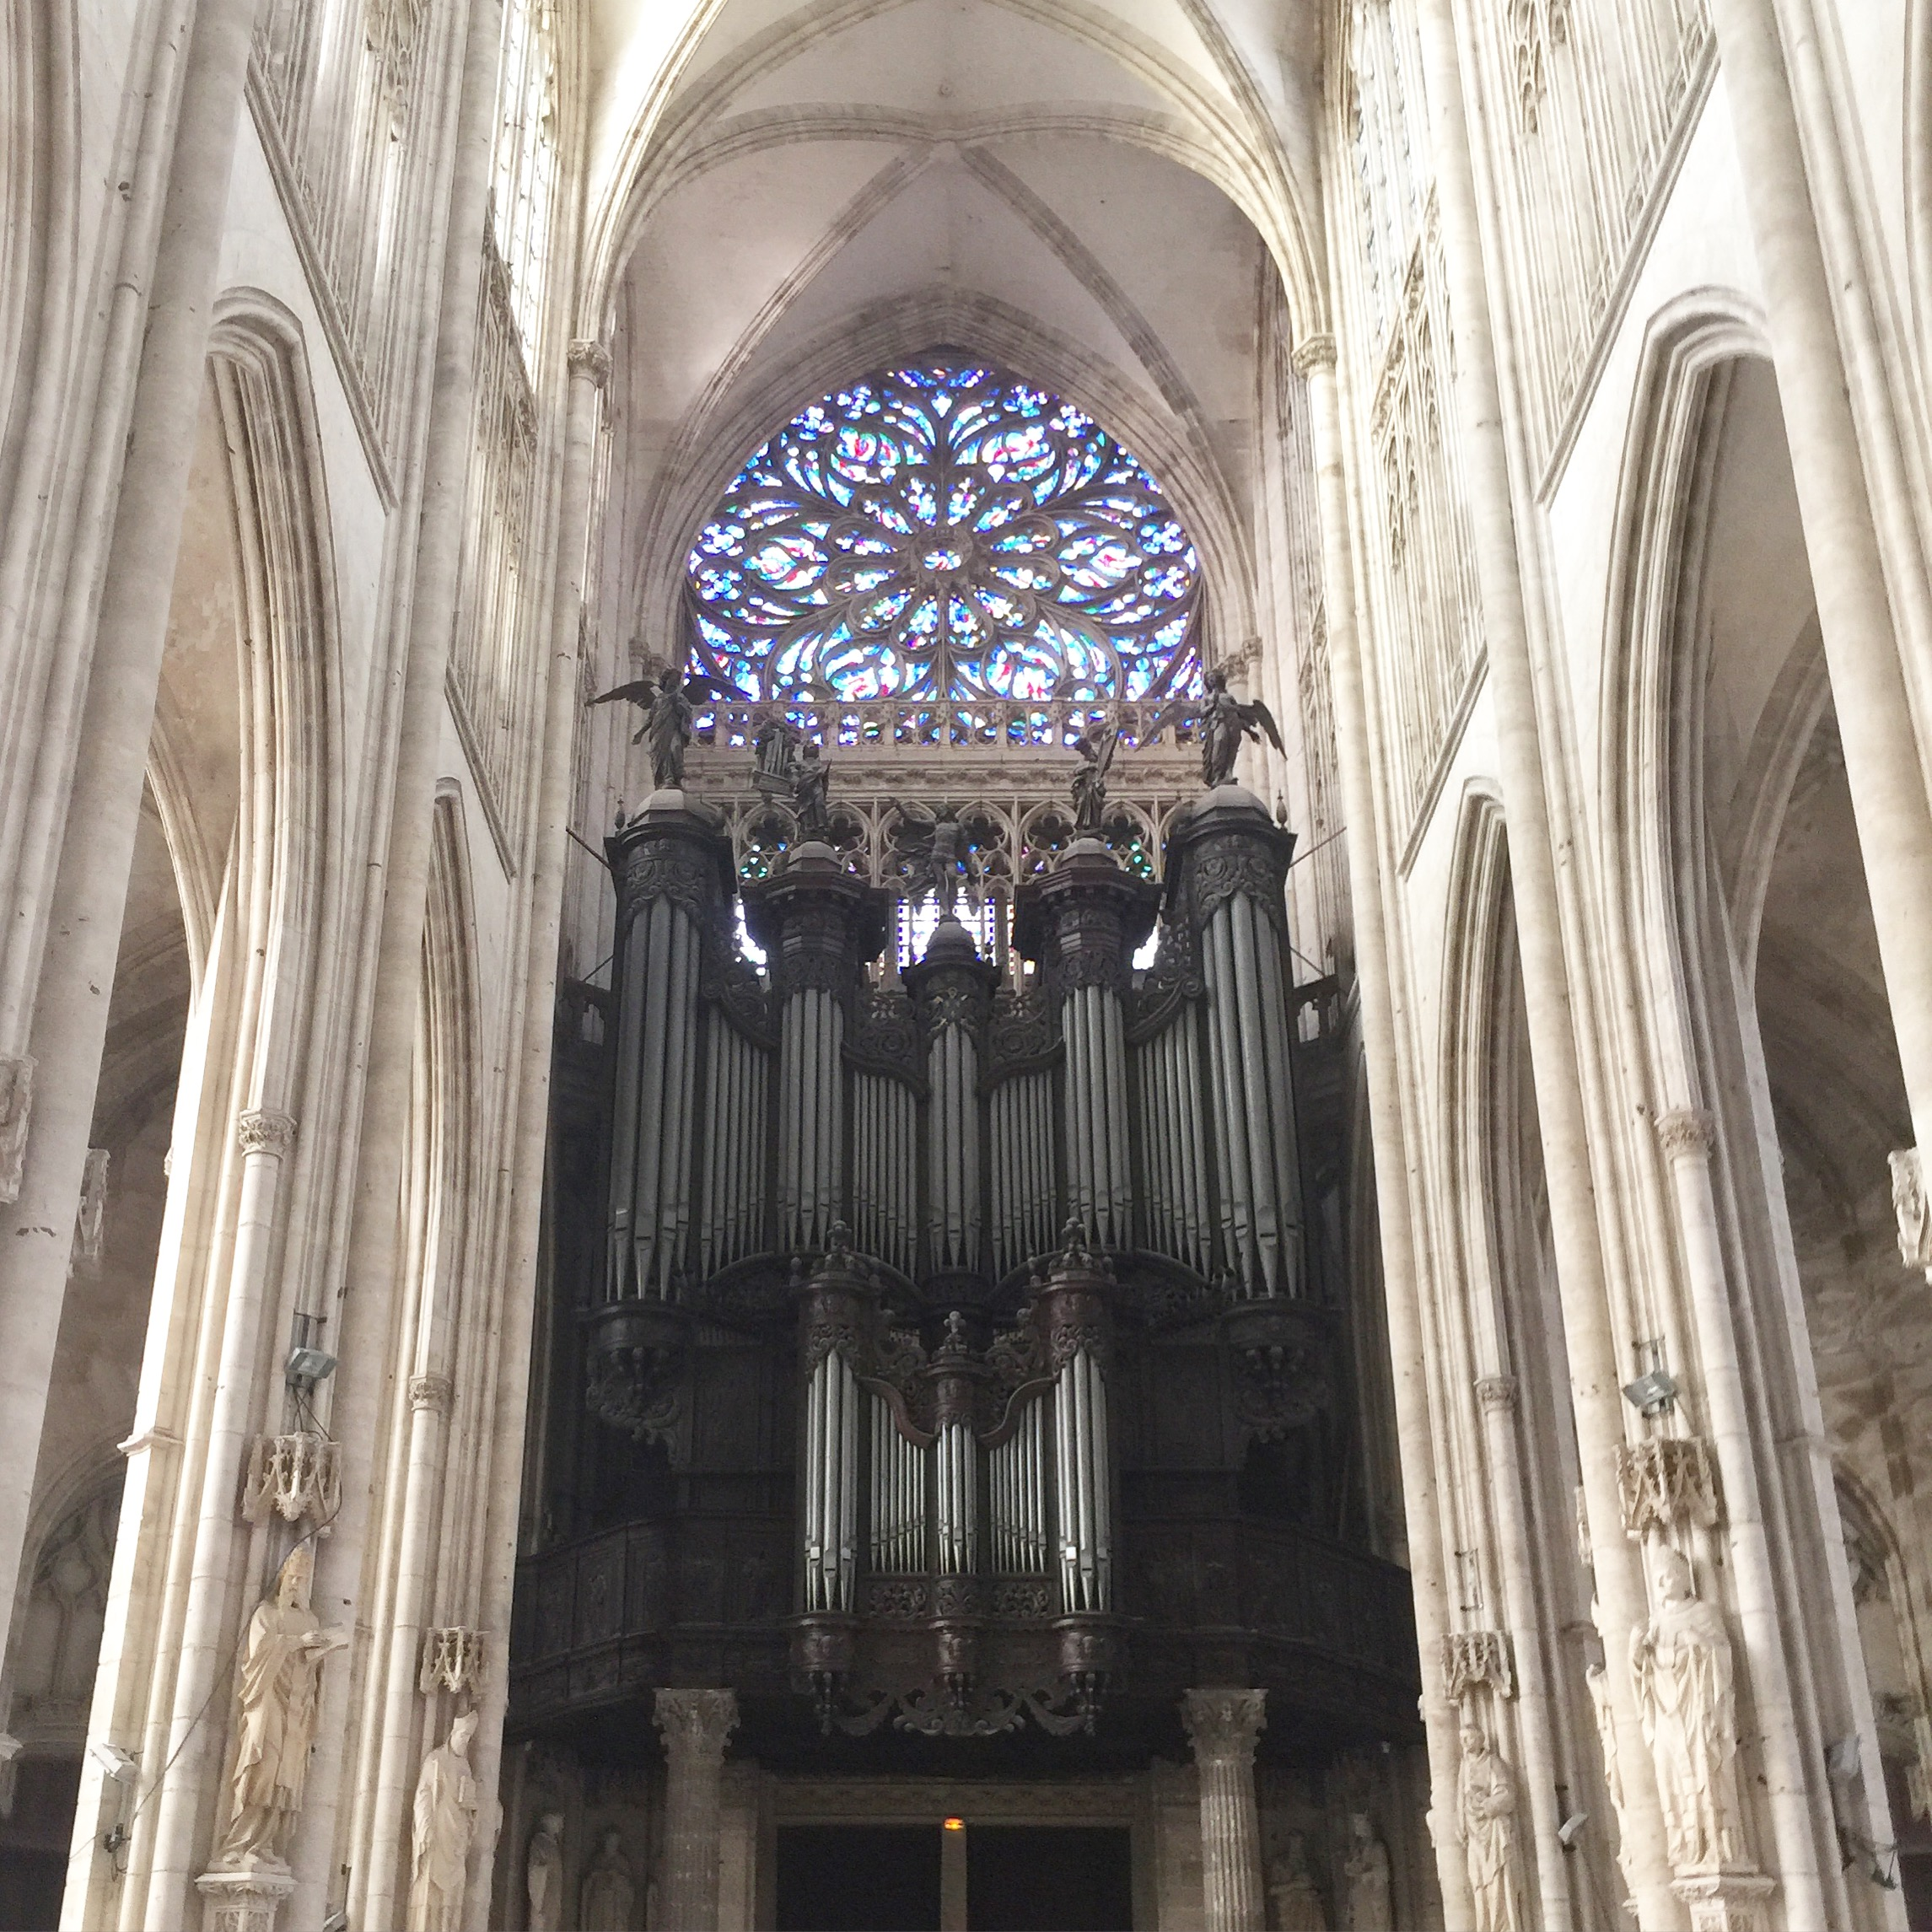 The grand organ and rose window of the Abbey of St Ouen, Rouen